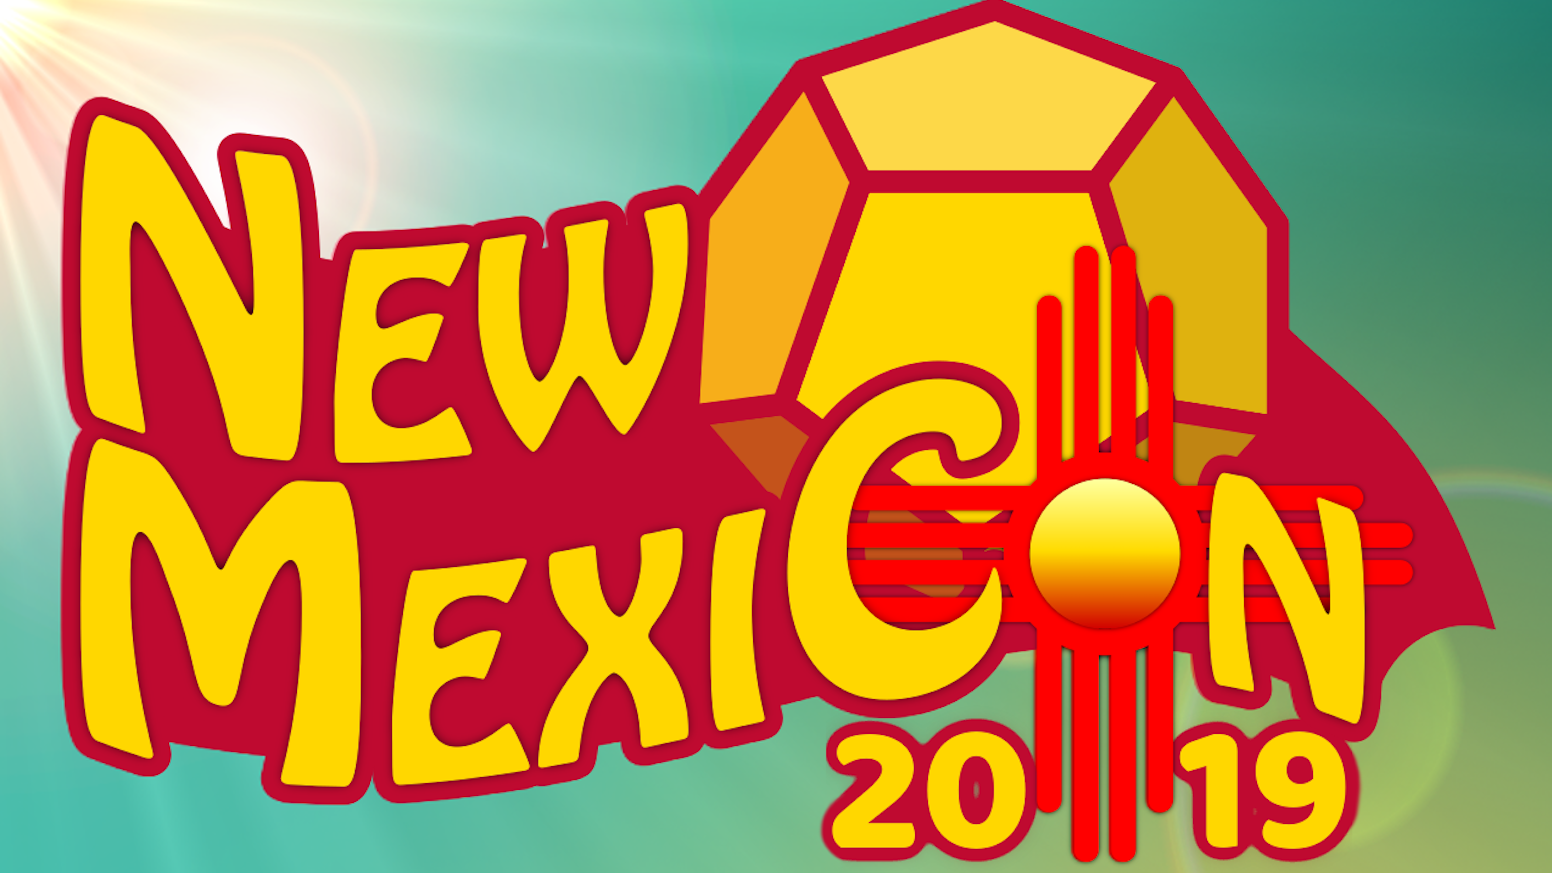 This is the 6th annual New MexiCon indie roleplaying convention!